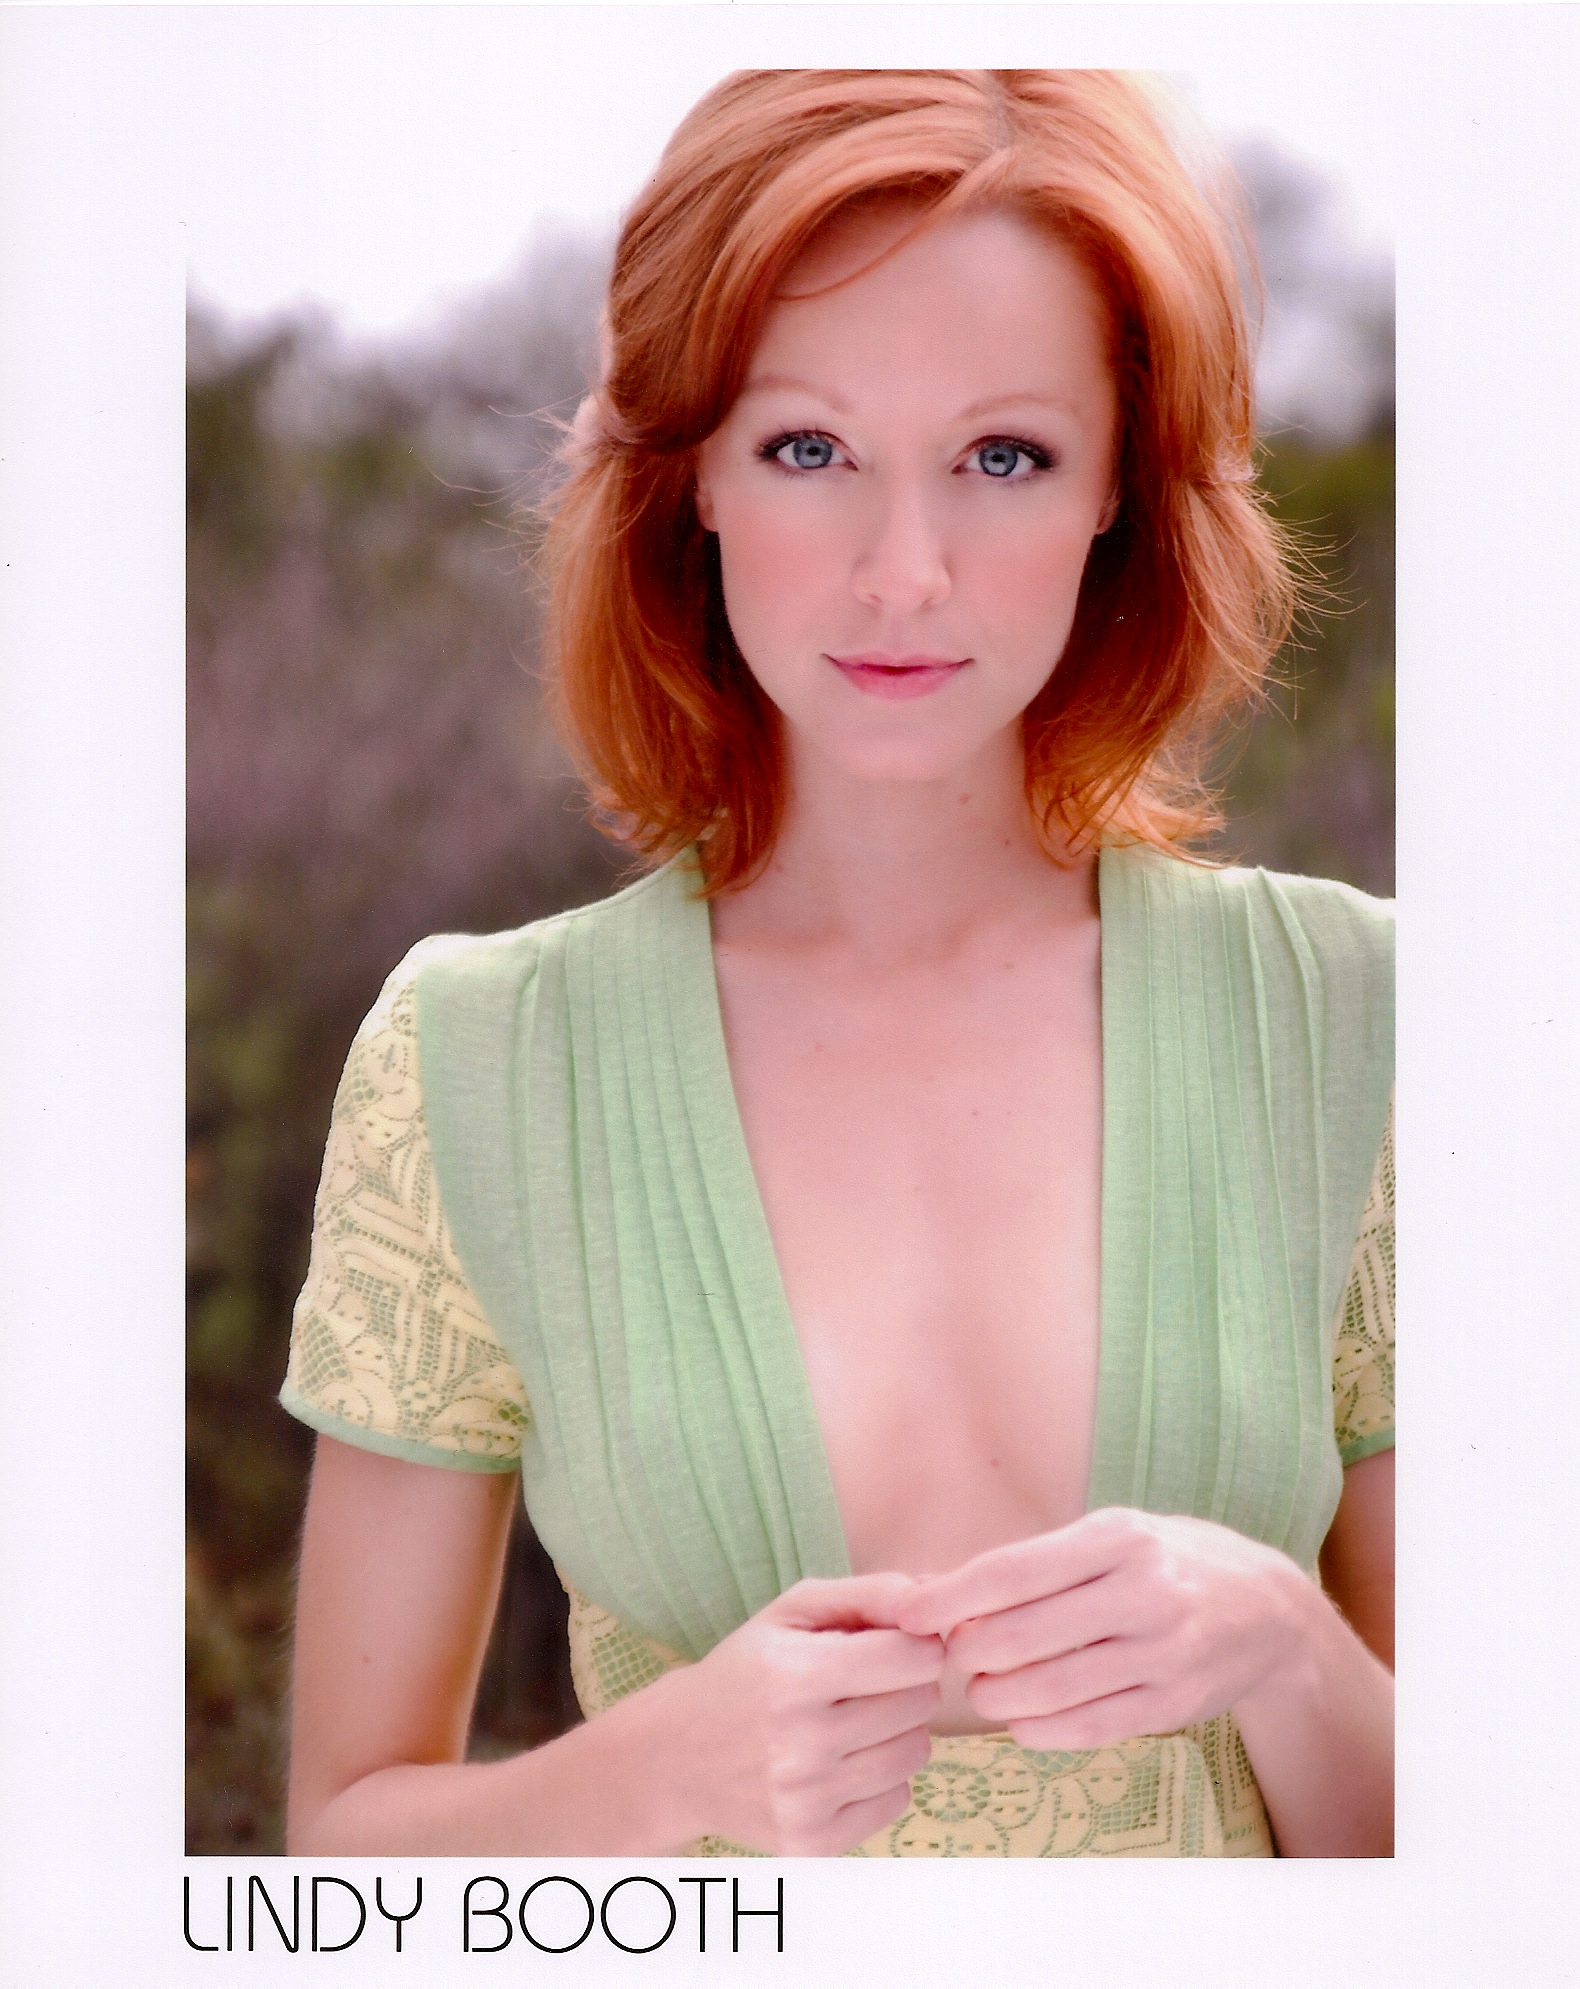 Lindy Booth nude photos 2019